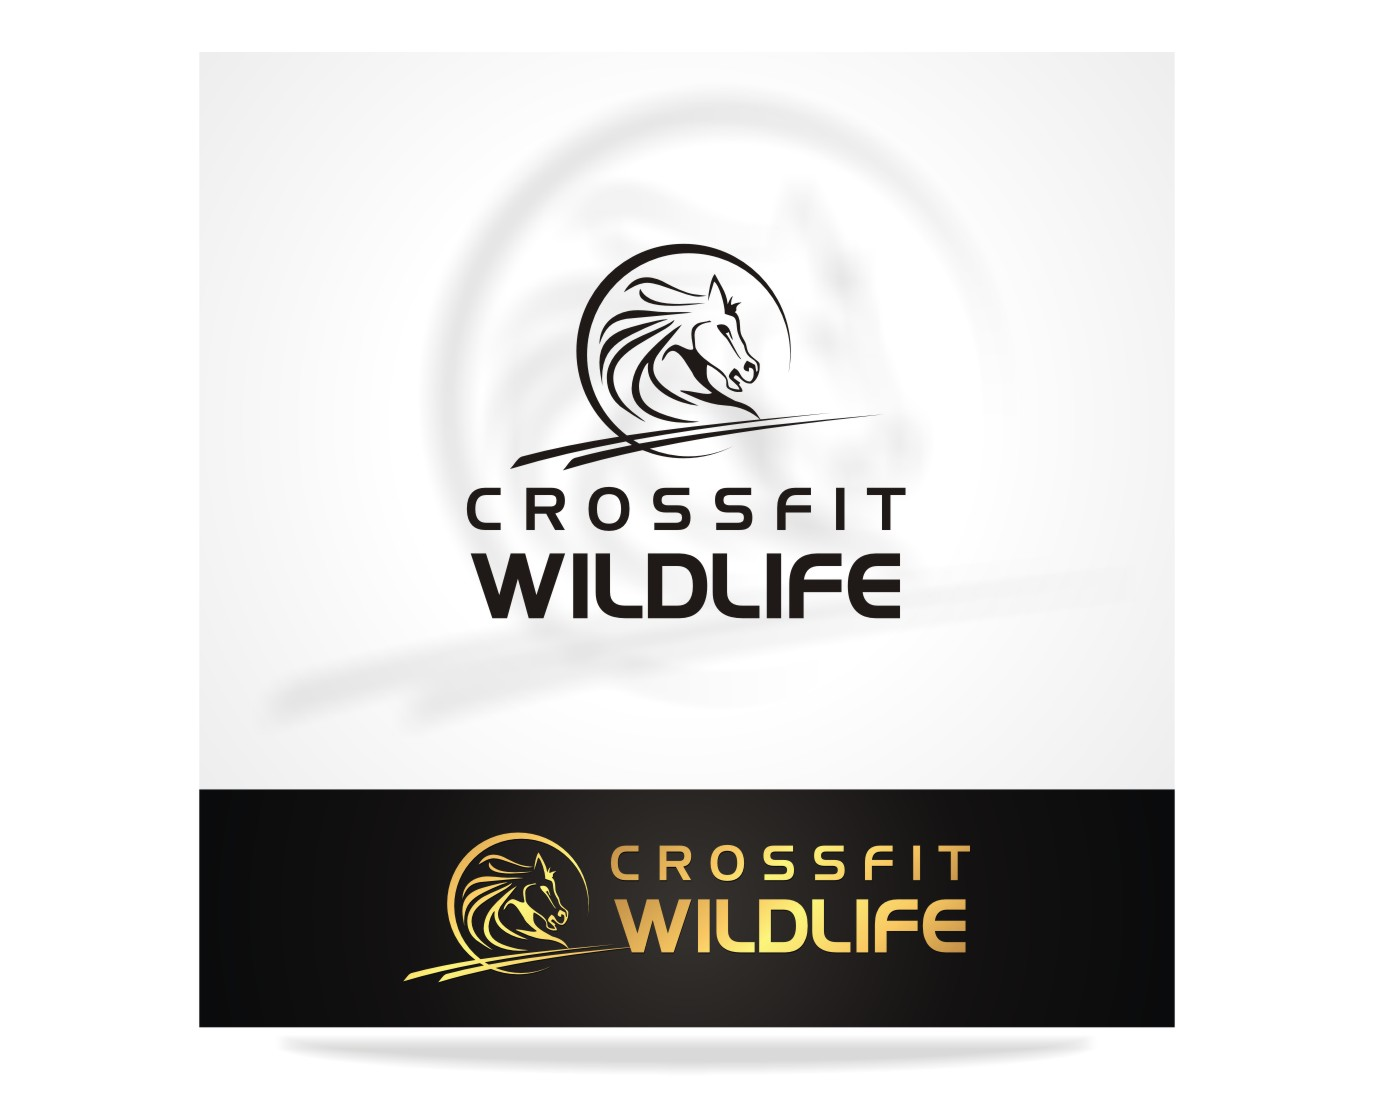 Logo Design by Pay_mo - Entry No. 10 in the Logo Design Contest Unique Logo Design Wanted for CrossFit Wildlife.